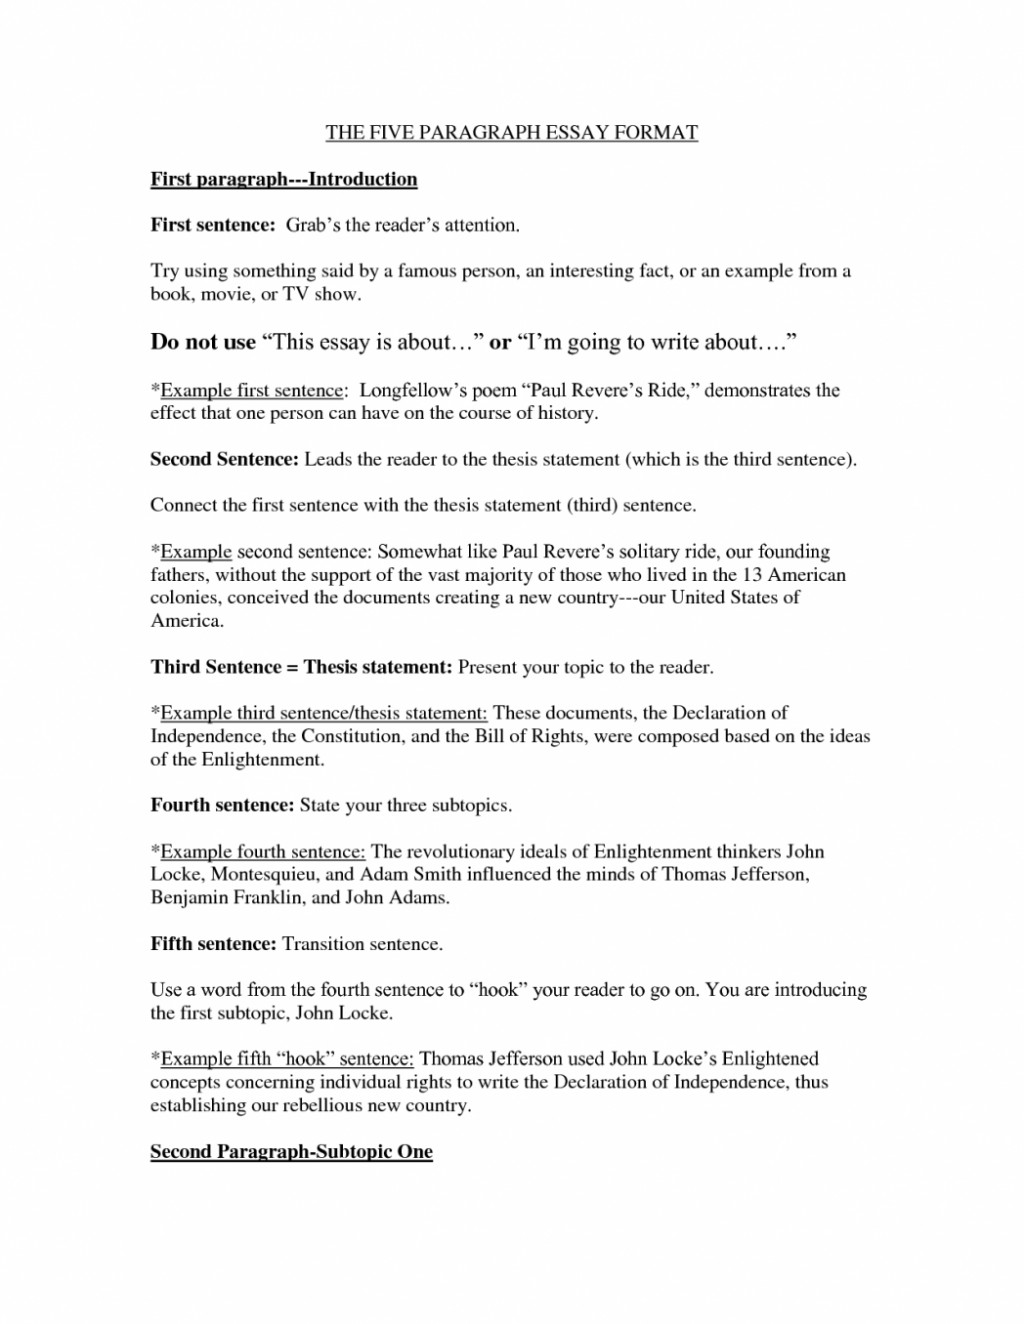 018 Good Hooks For Persuasive Essays Argumentive Sample What Is Hook Essay The Thesis Statement Should O3c Great On School Uniforms Writing 1048x1356 Example In Top A An About Crucible Odysseus Leadership Large